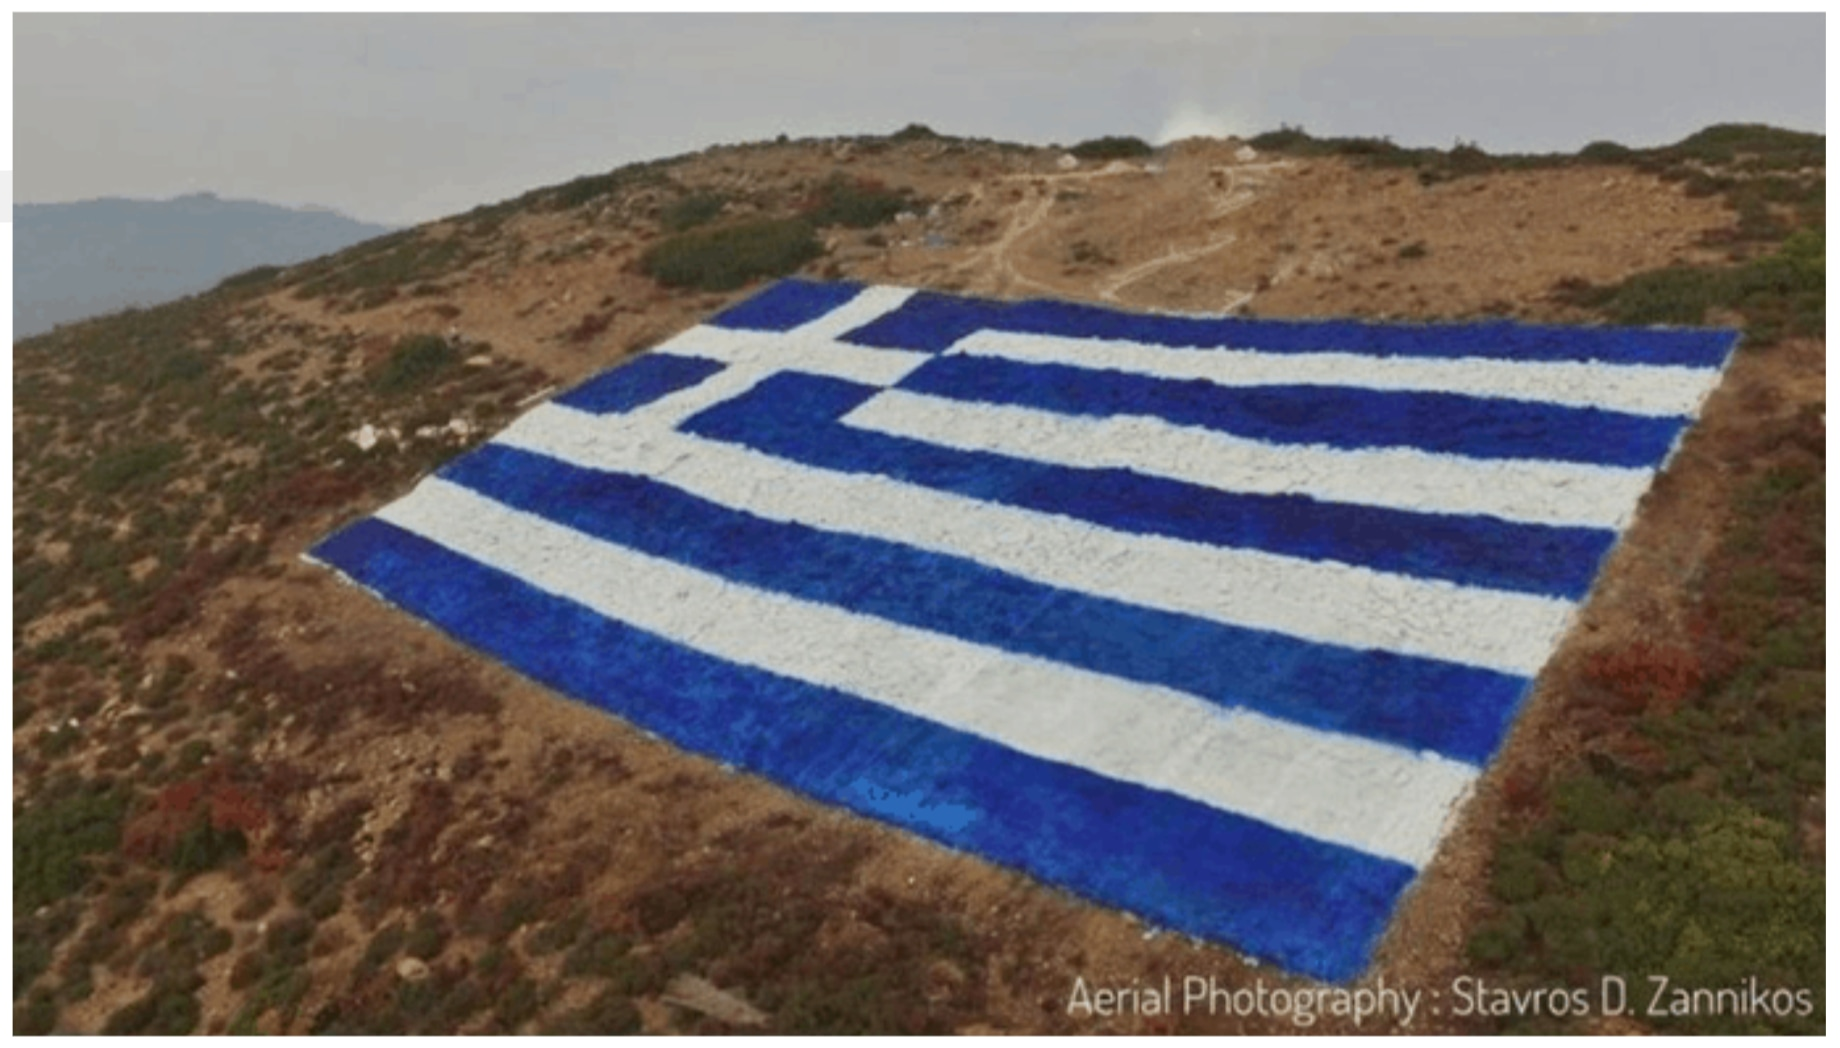 Greece's largest flag sends message to Turkish fighter jets violating Aegean air space